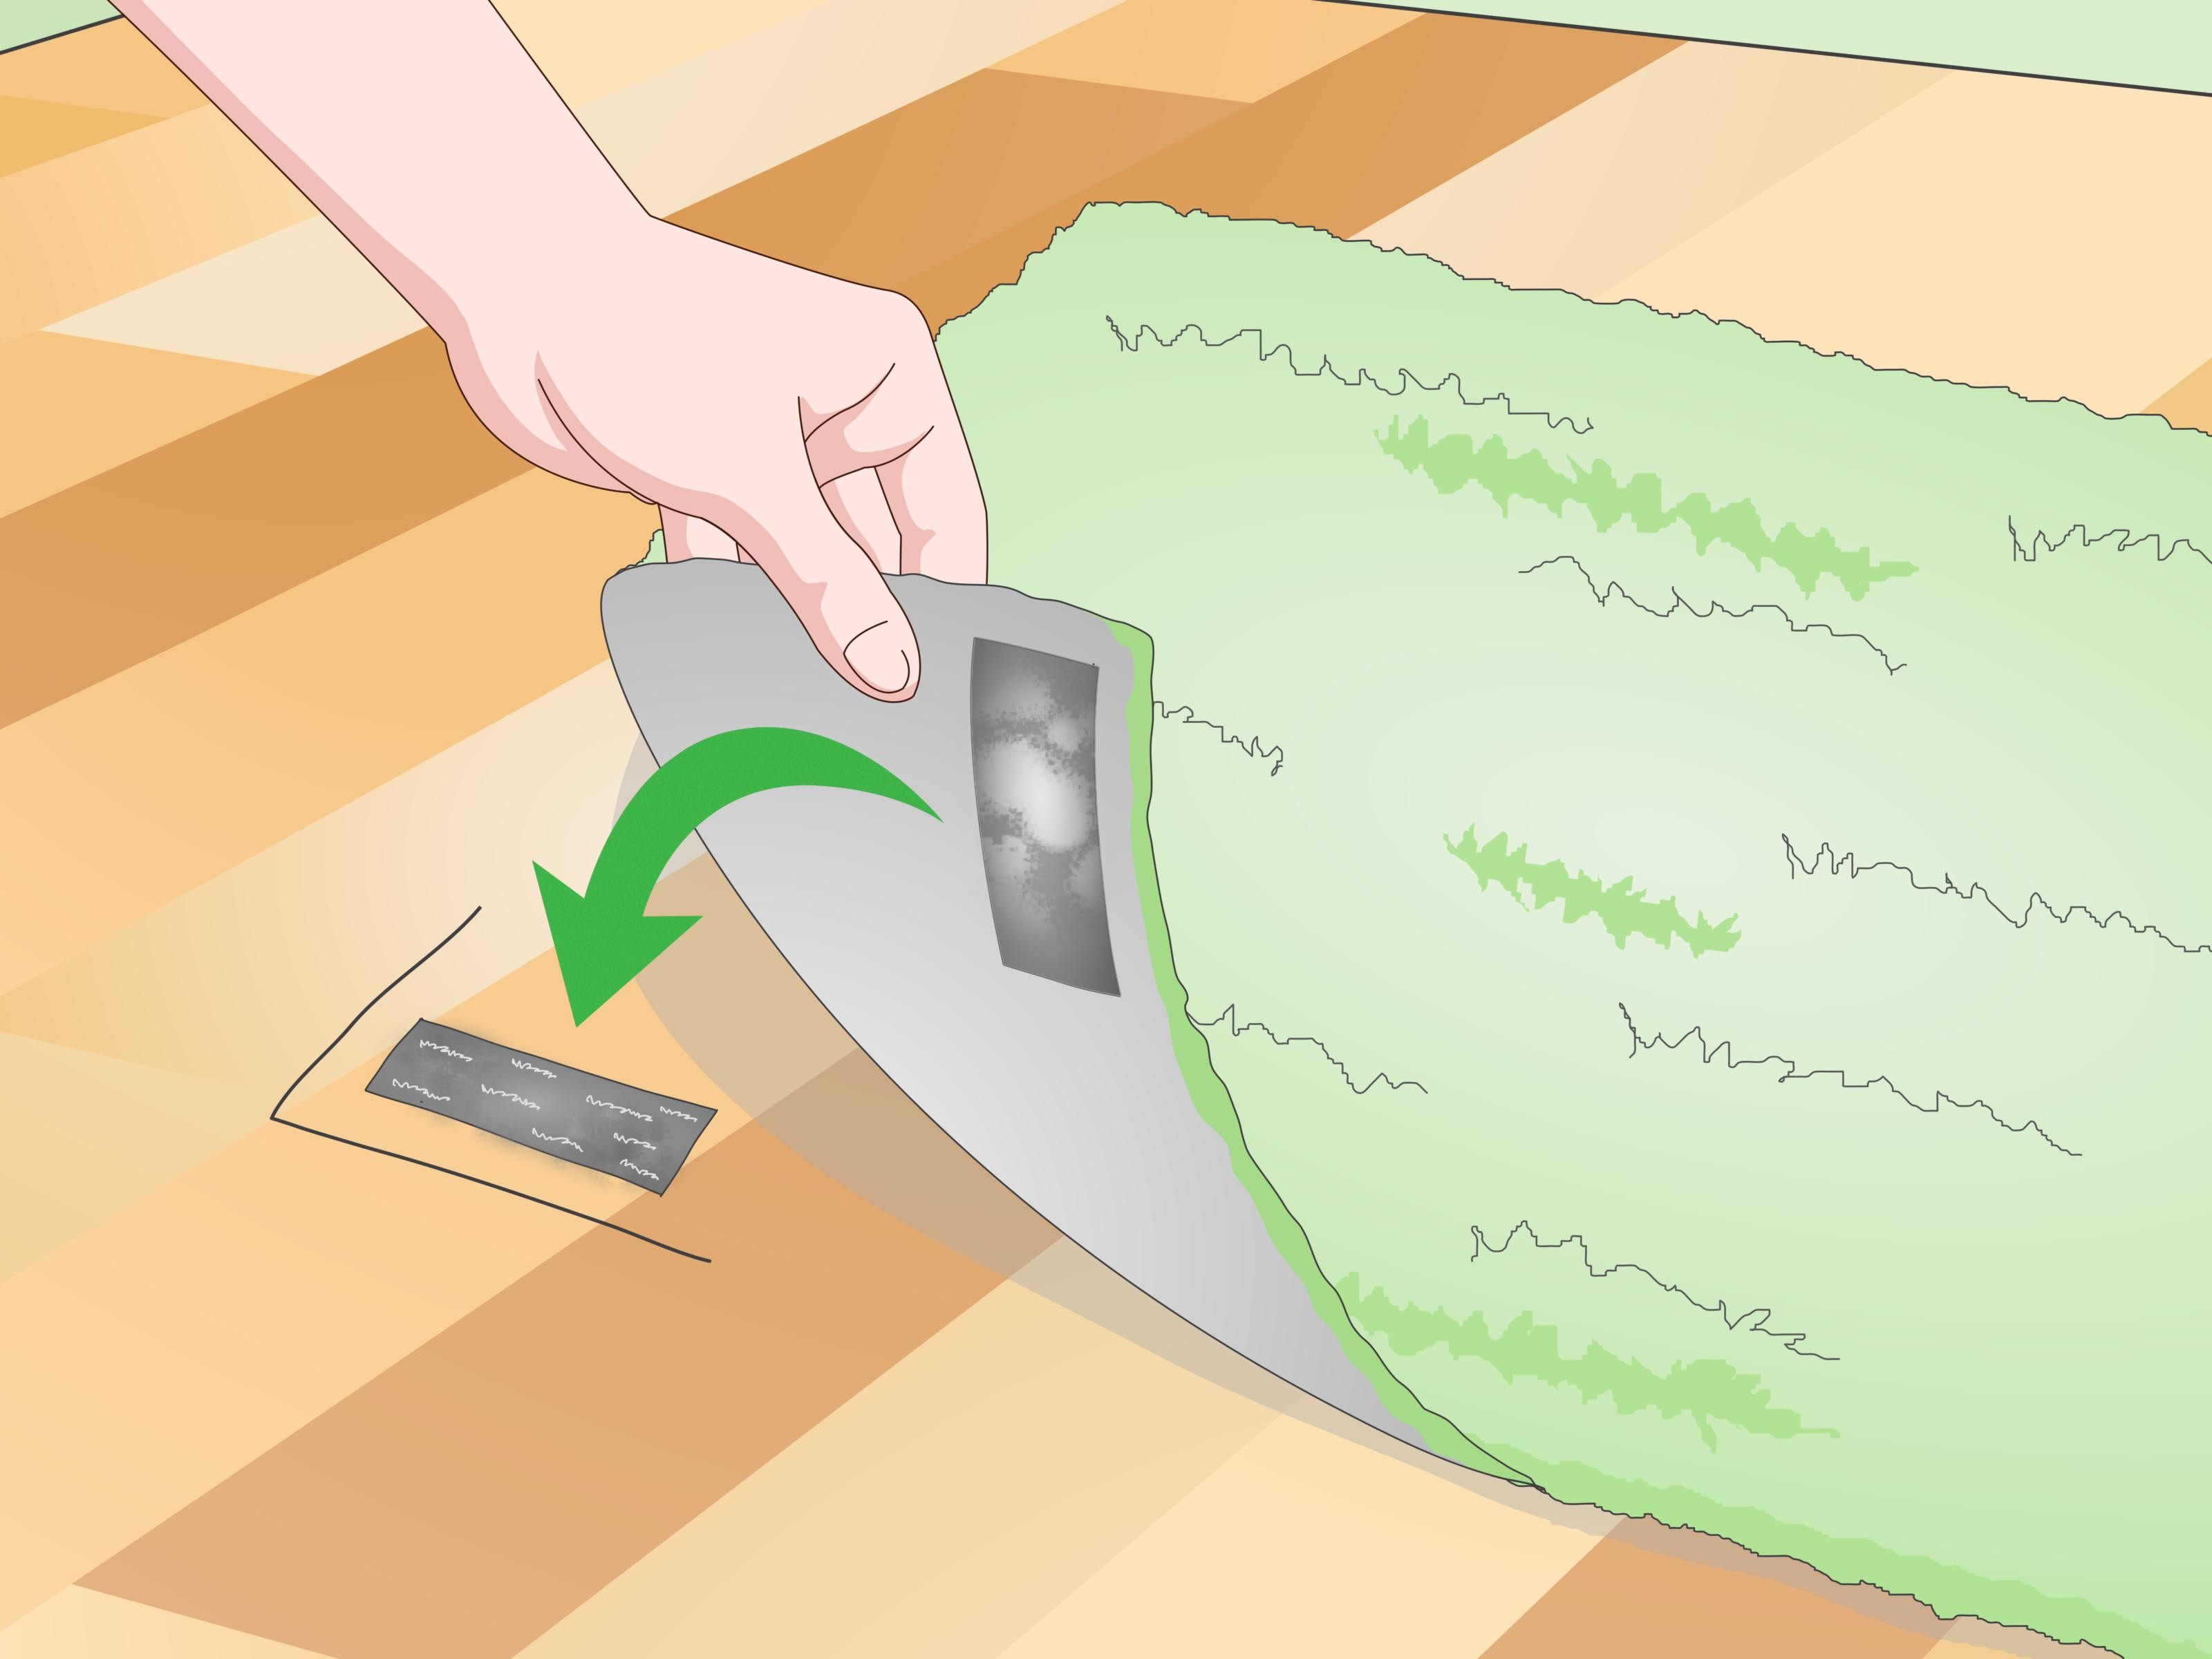 hardwood floor protection paper of 3 ways to stop a rug from moving on a wooden floor wikihow with stop a rug from moving on a wooden floor step 18